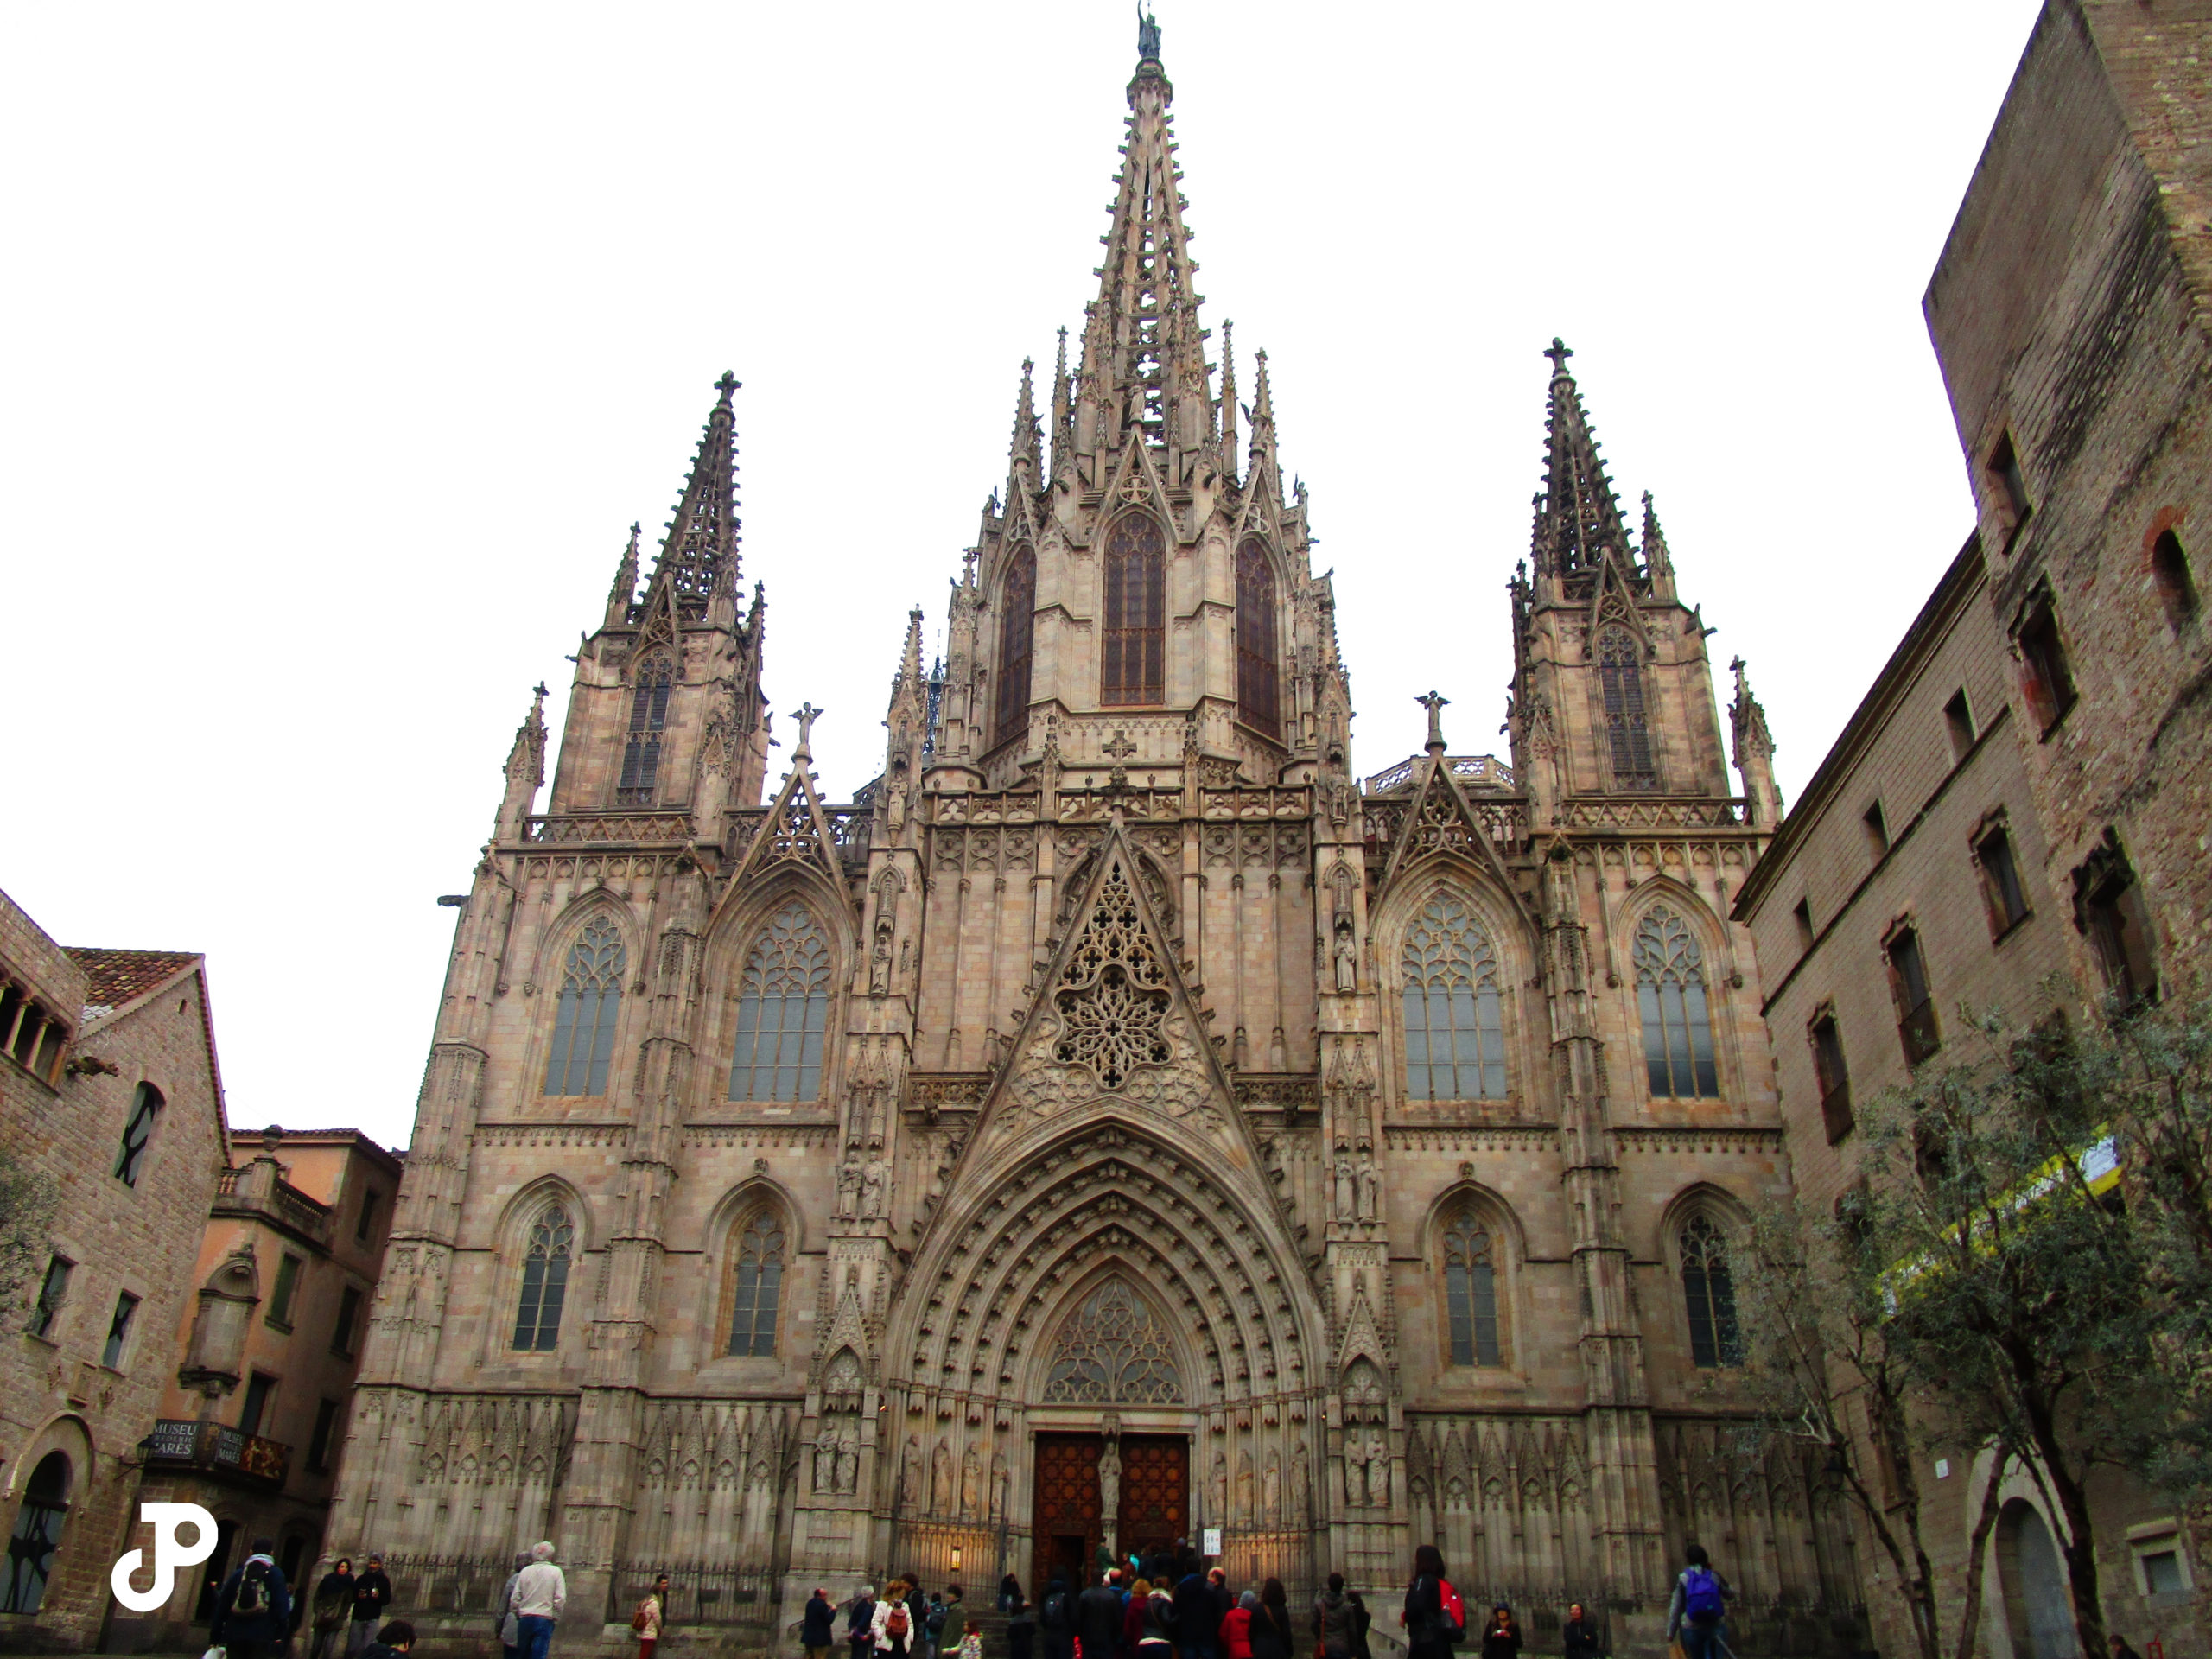 the ornate facade of the Cathedral of Barcelona